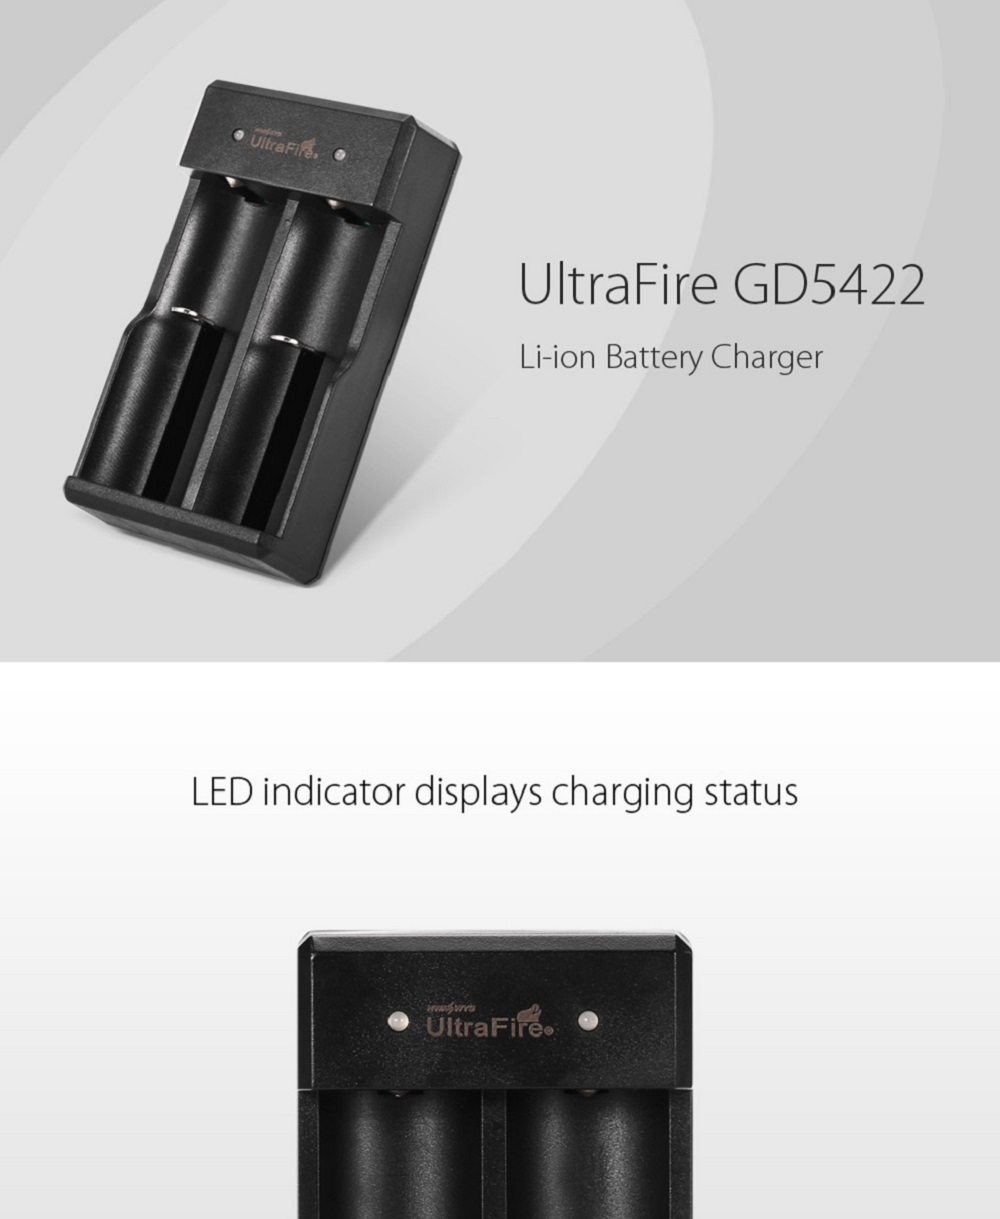 UltraFire GD5422 Li-ion Battery Charger for 18650 10440 14500 16340 Batteries